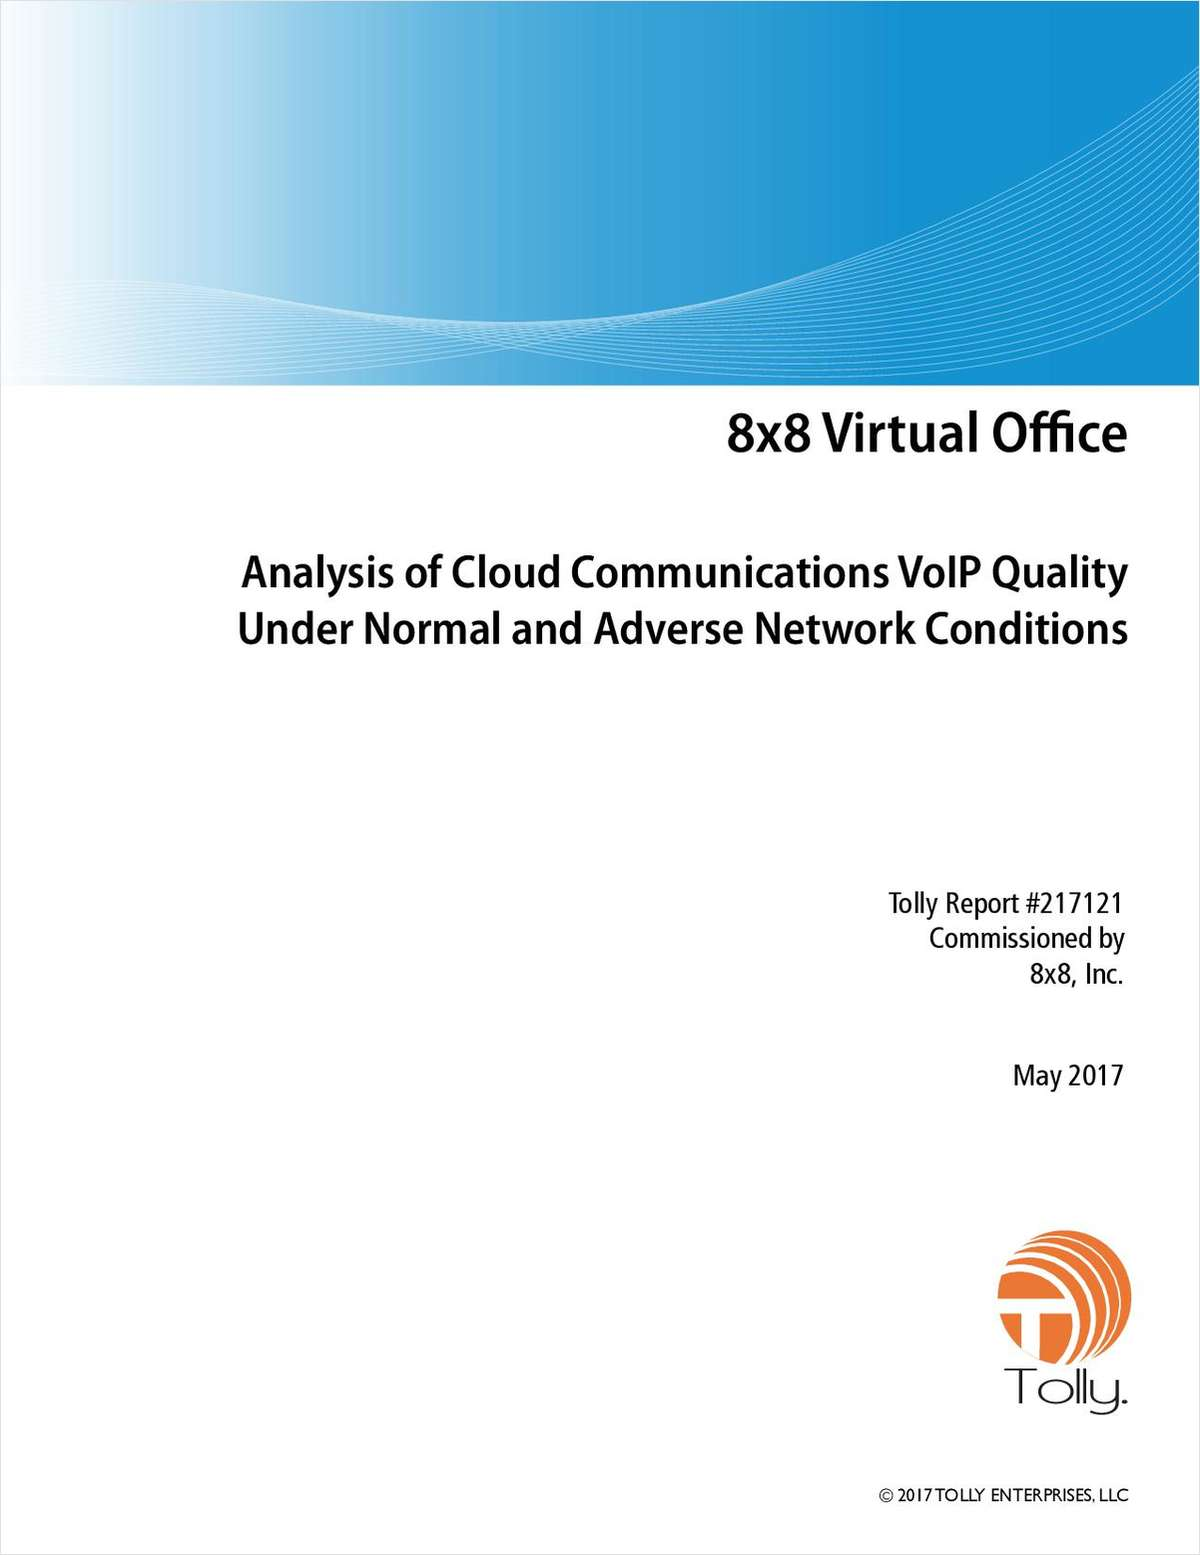 Analysis of Cloud Communications VoIP Quality Under Normal and Adverse Network Conditions